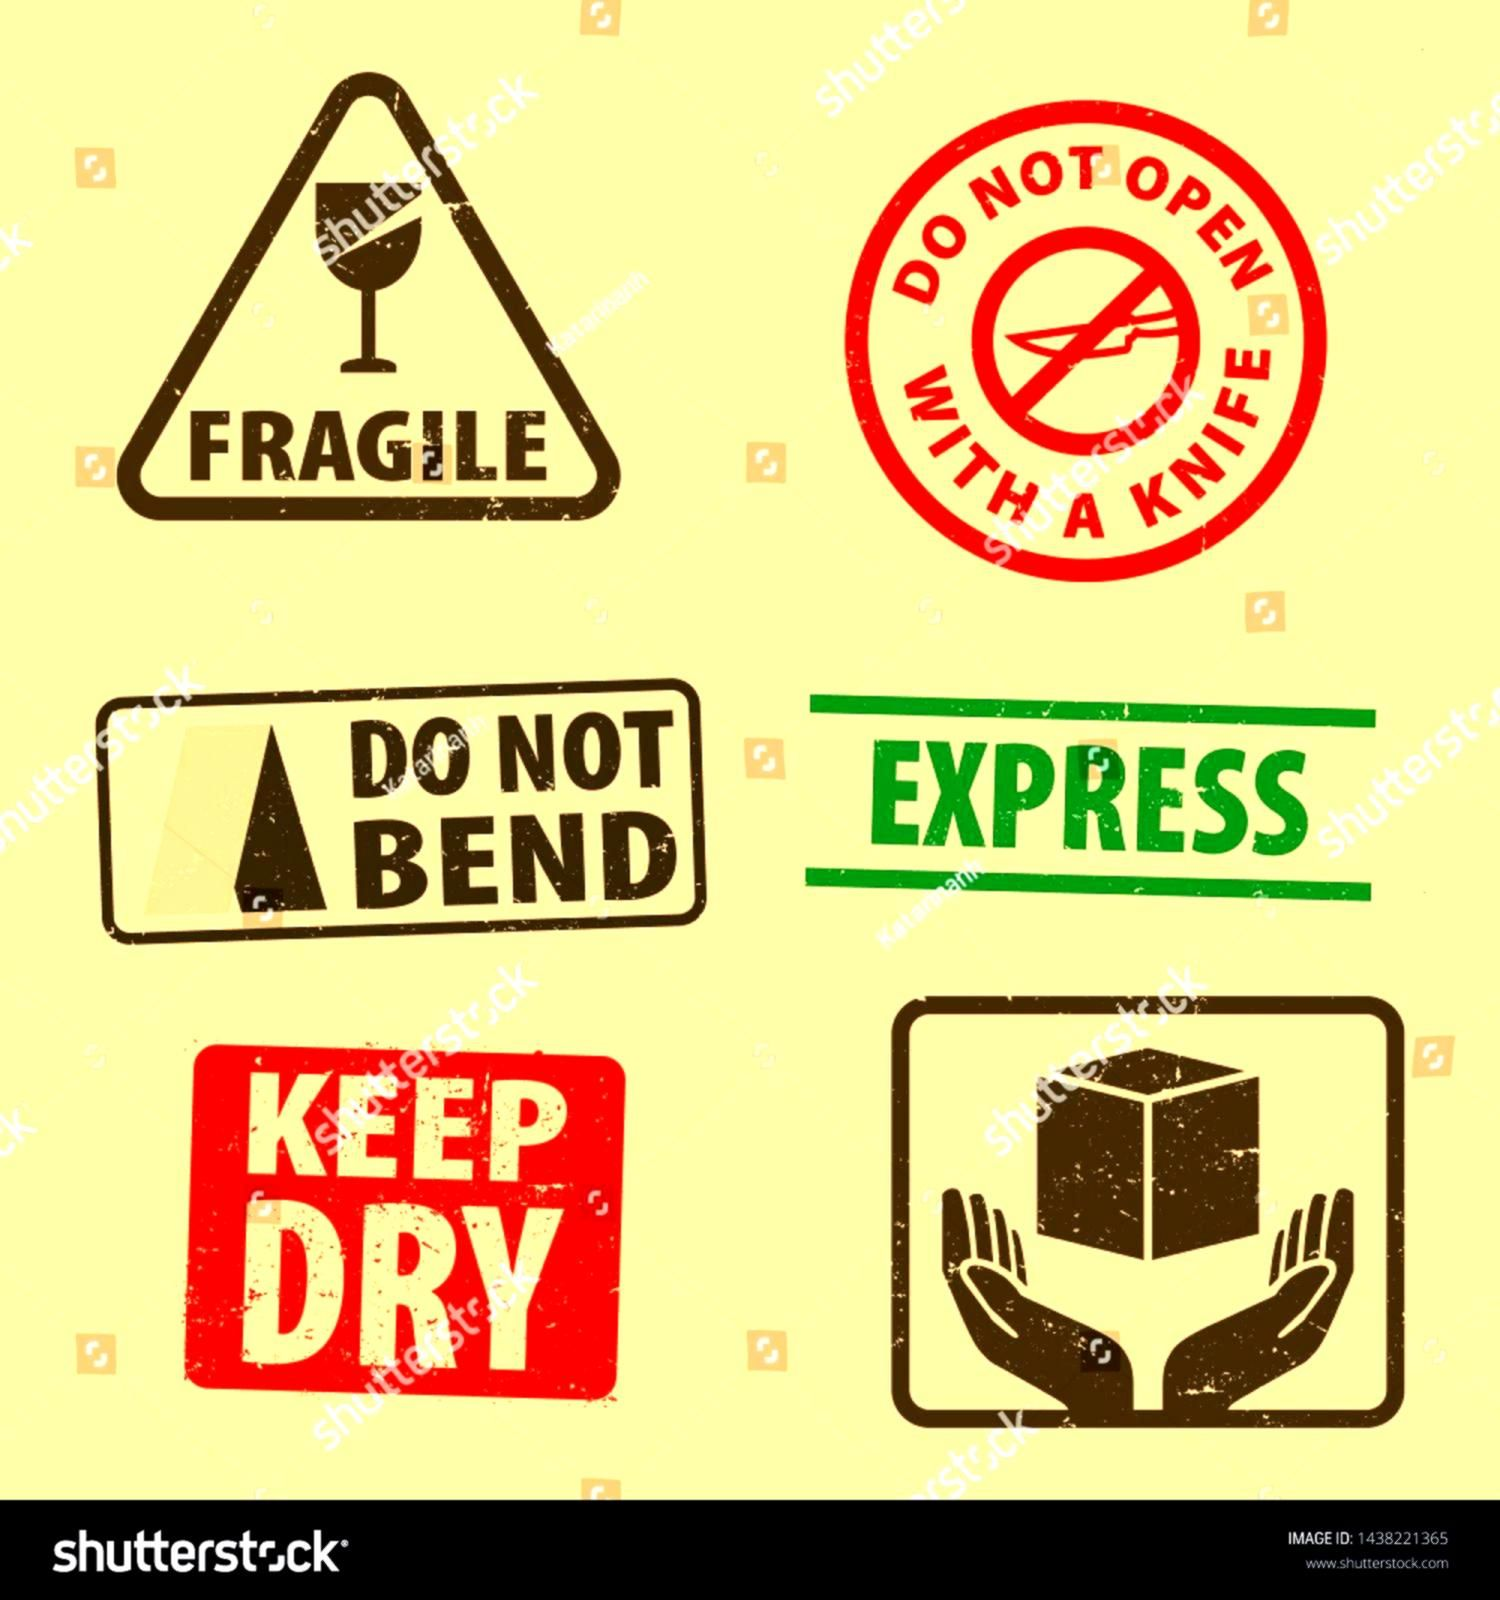 of fragile sticker keep dry and case icon packaging symbols sign fragile and Express rubber stamp on cardboard background vector illustration Use on package EPS10 Set of...